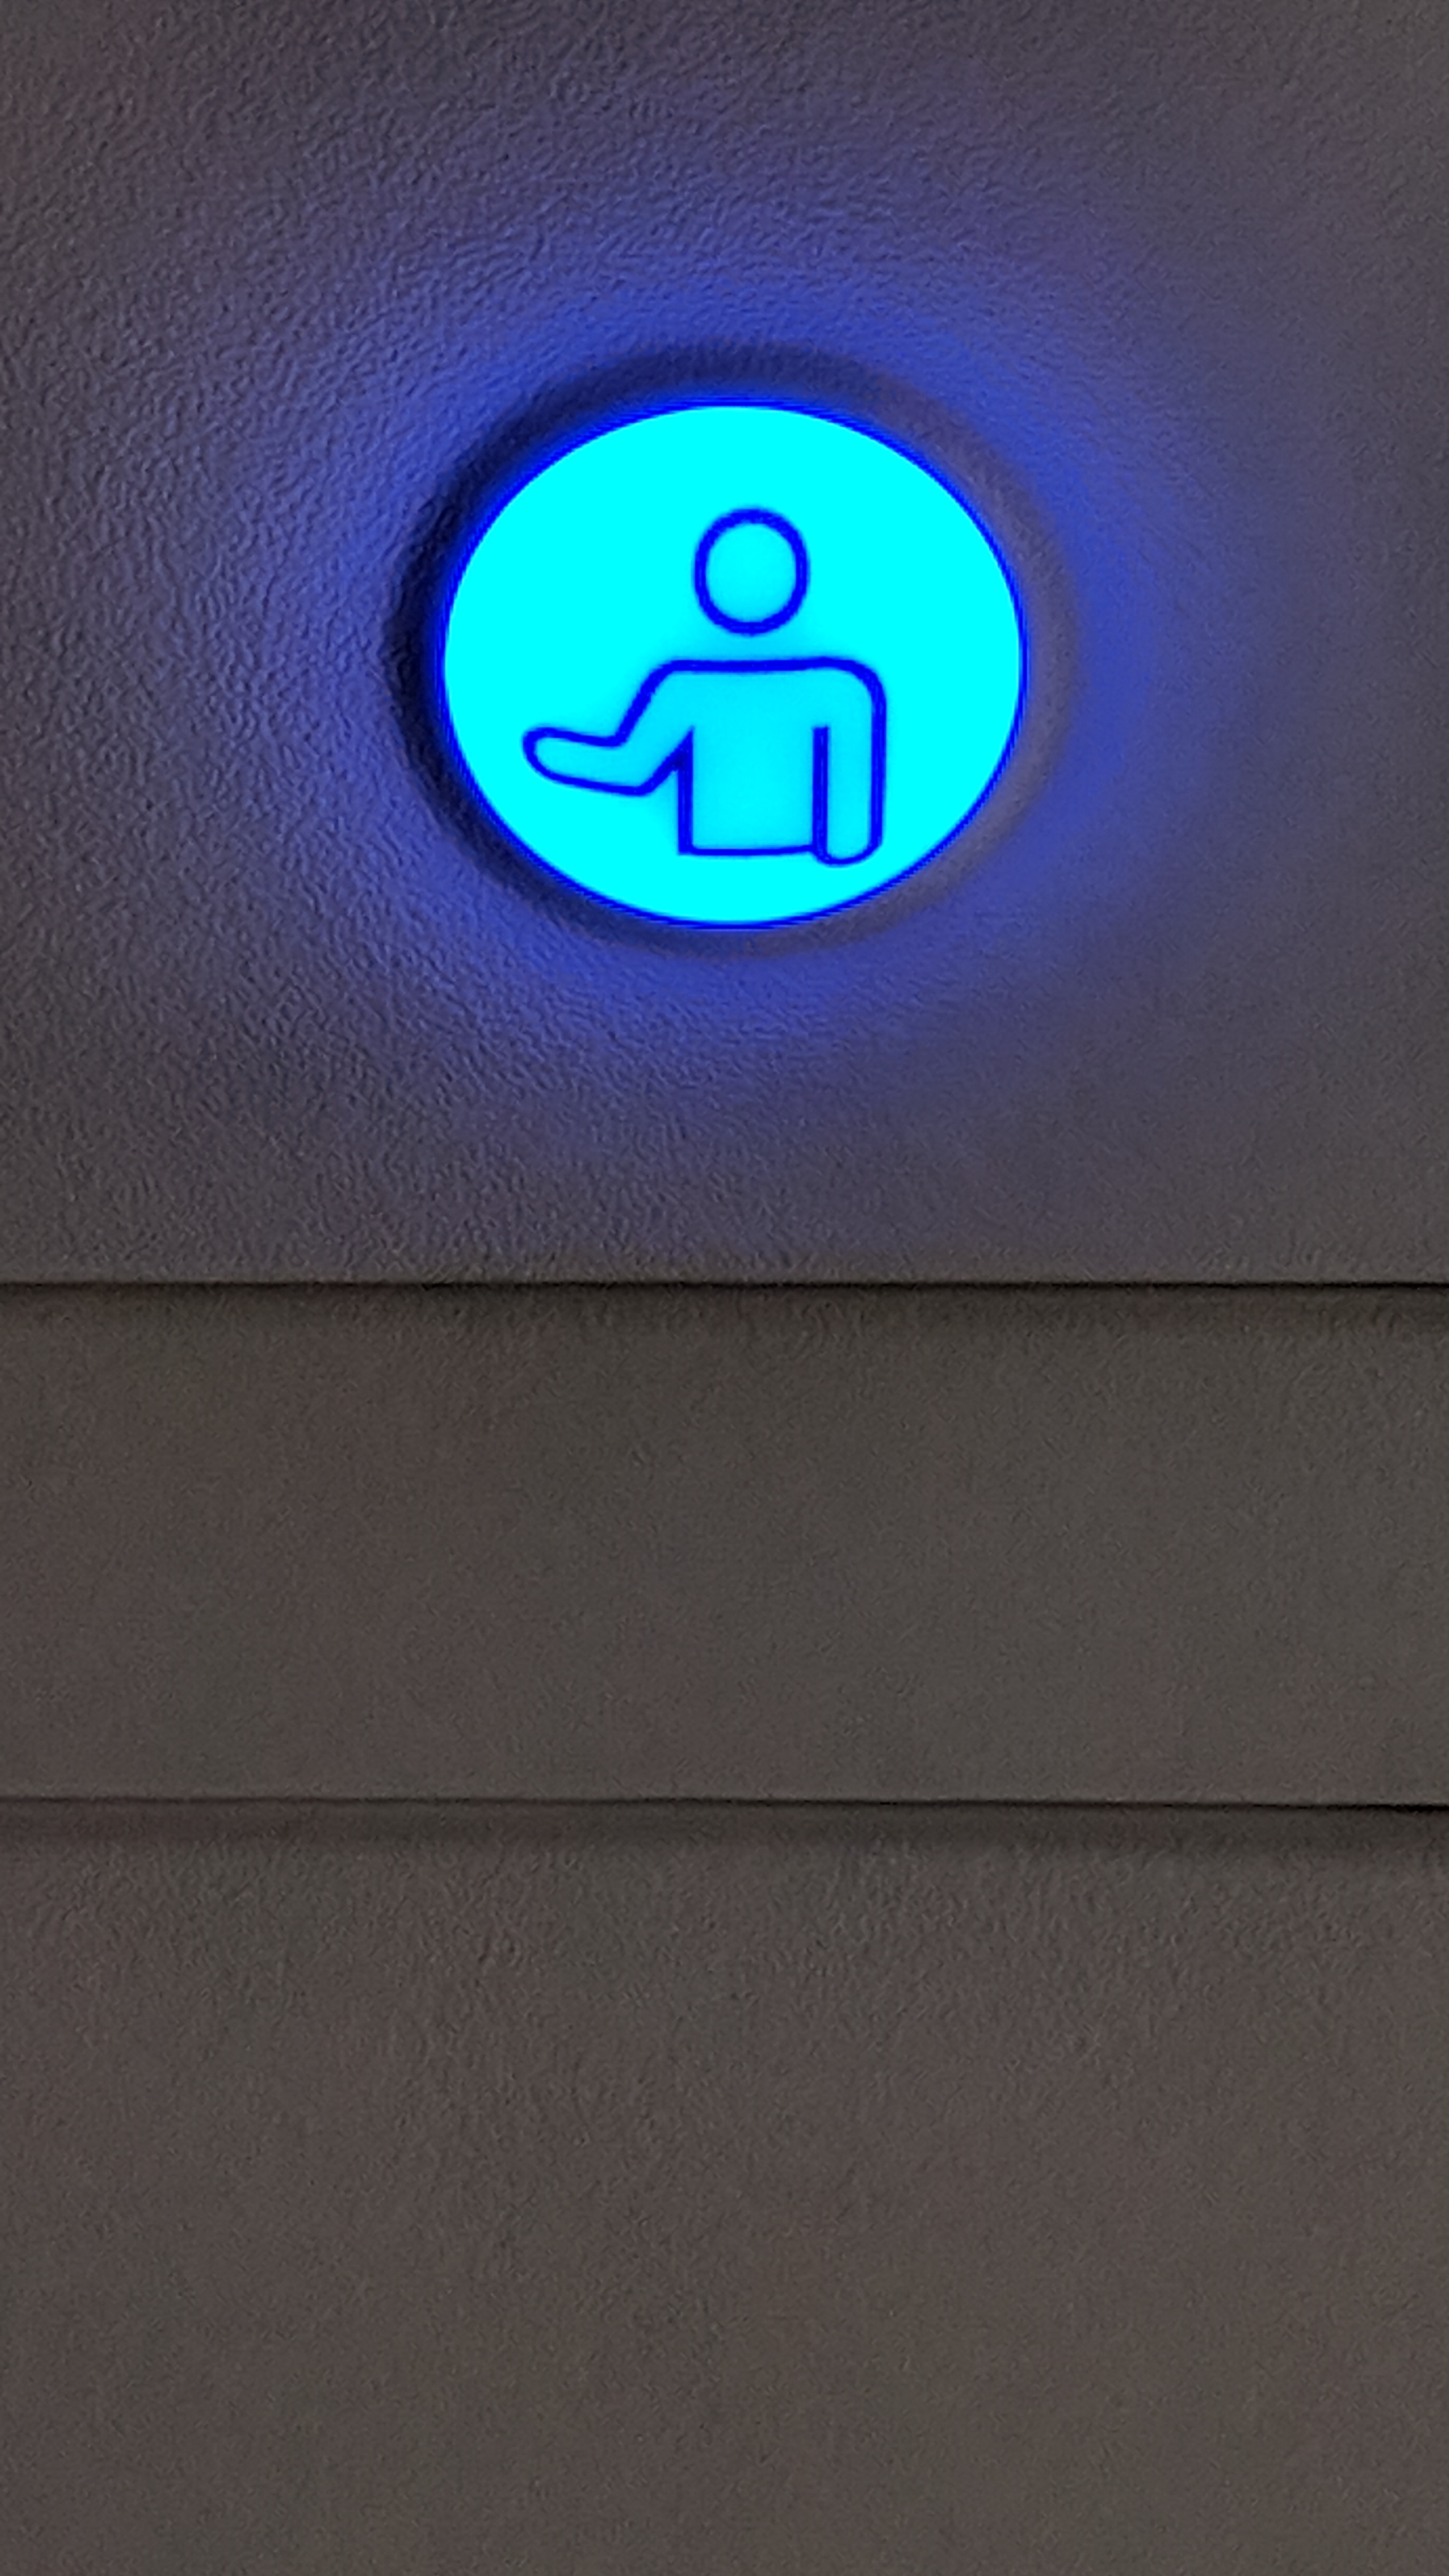 Blue airplane assistant call button